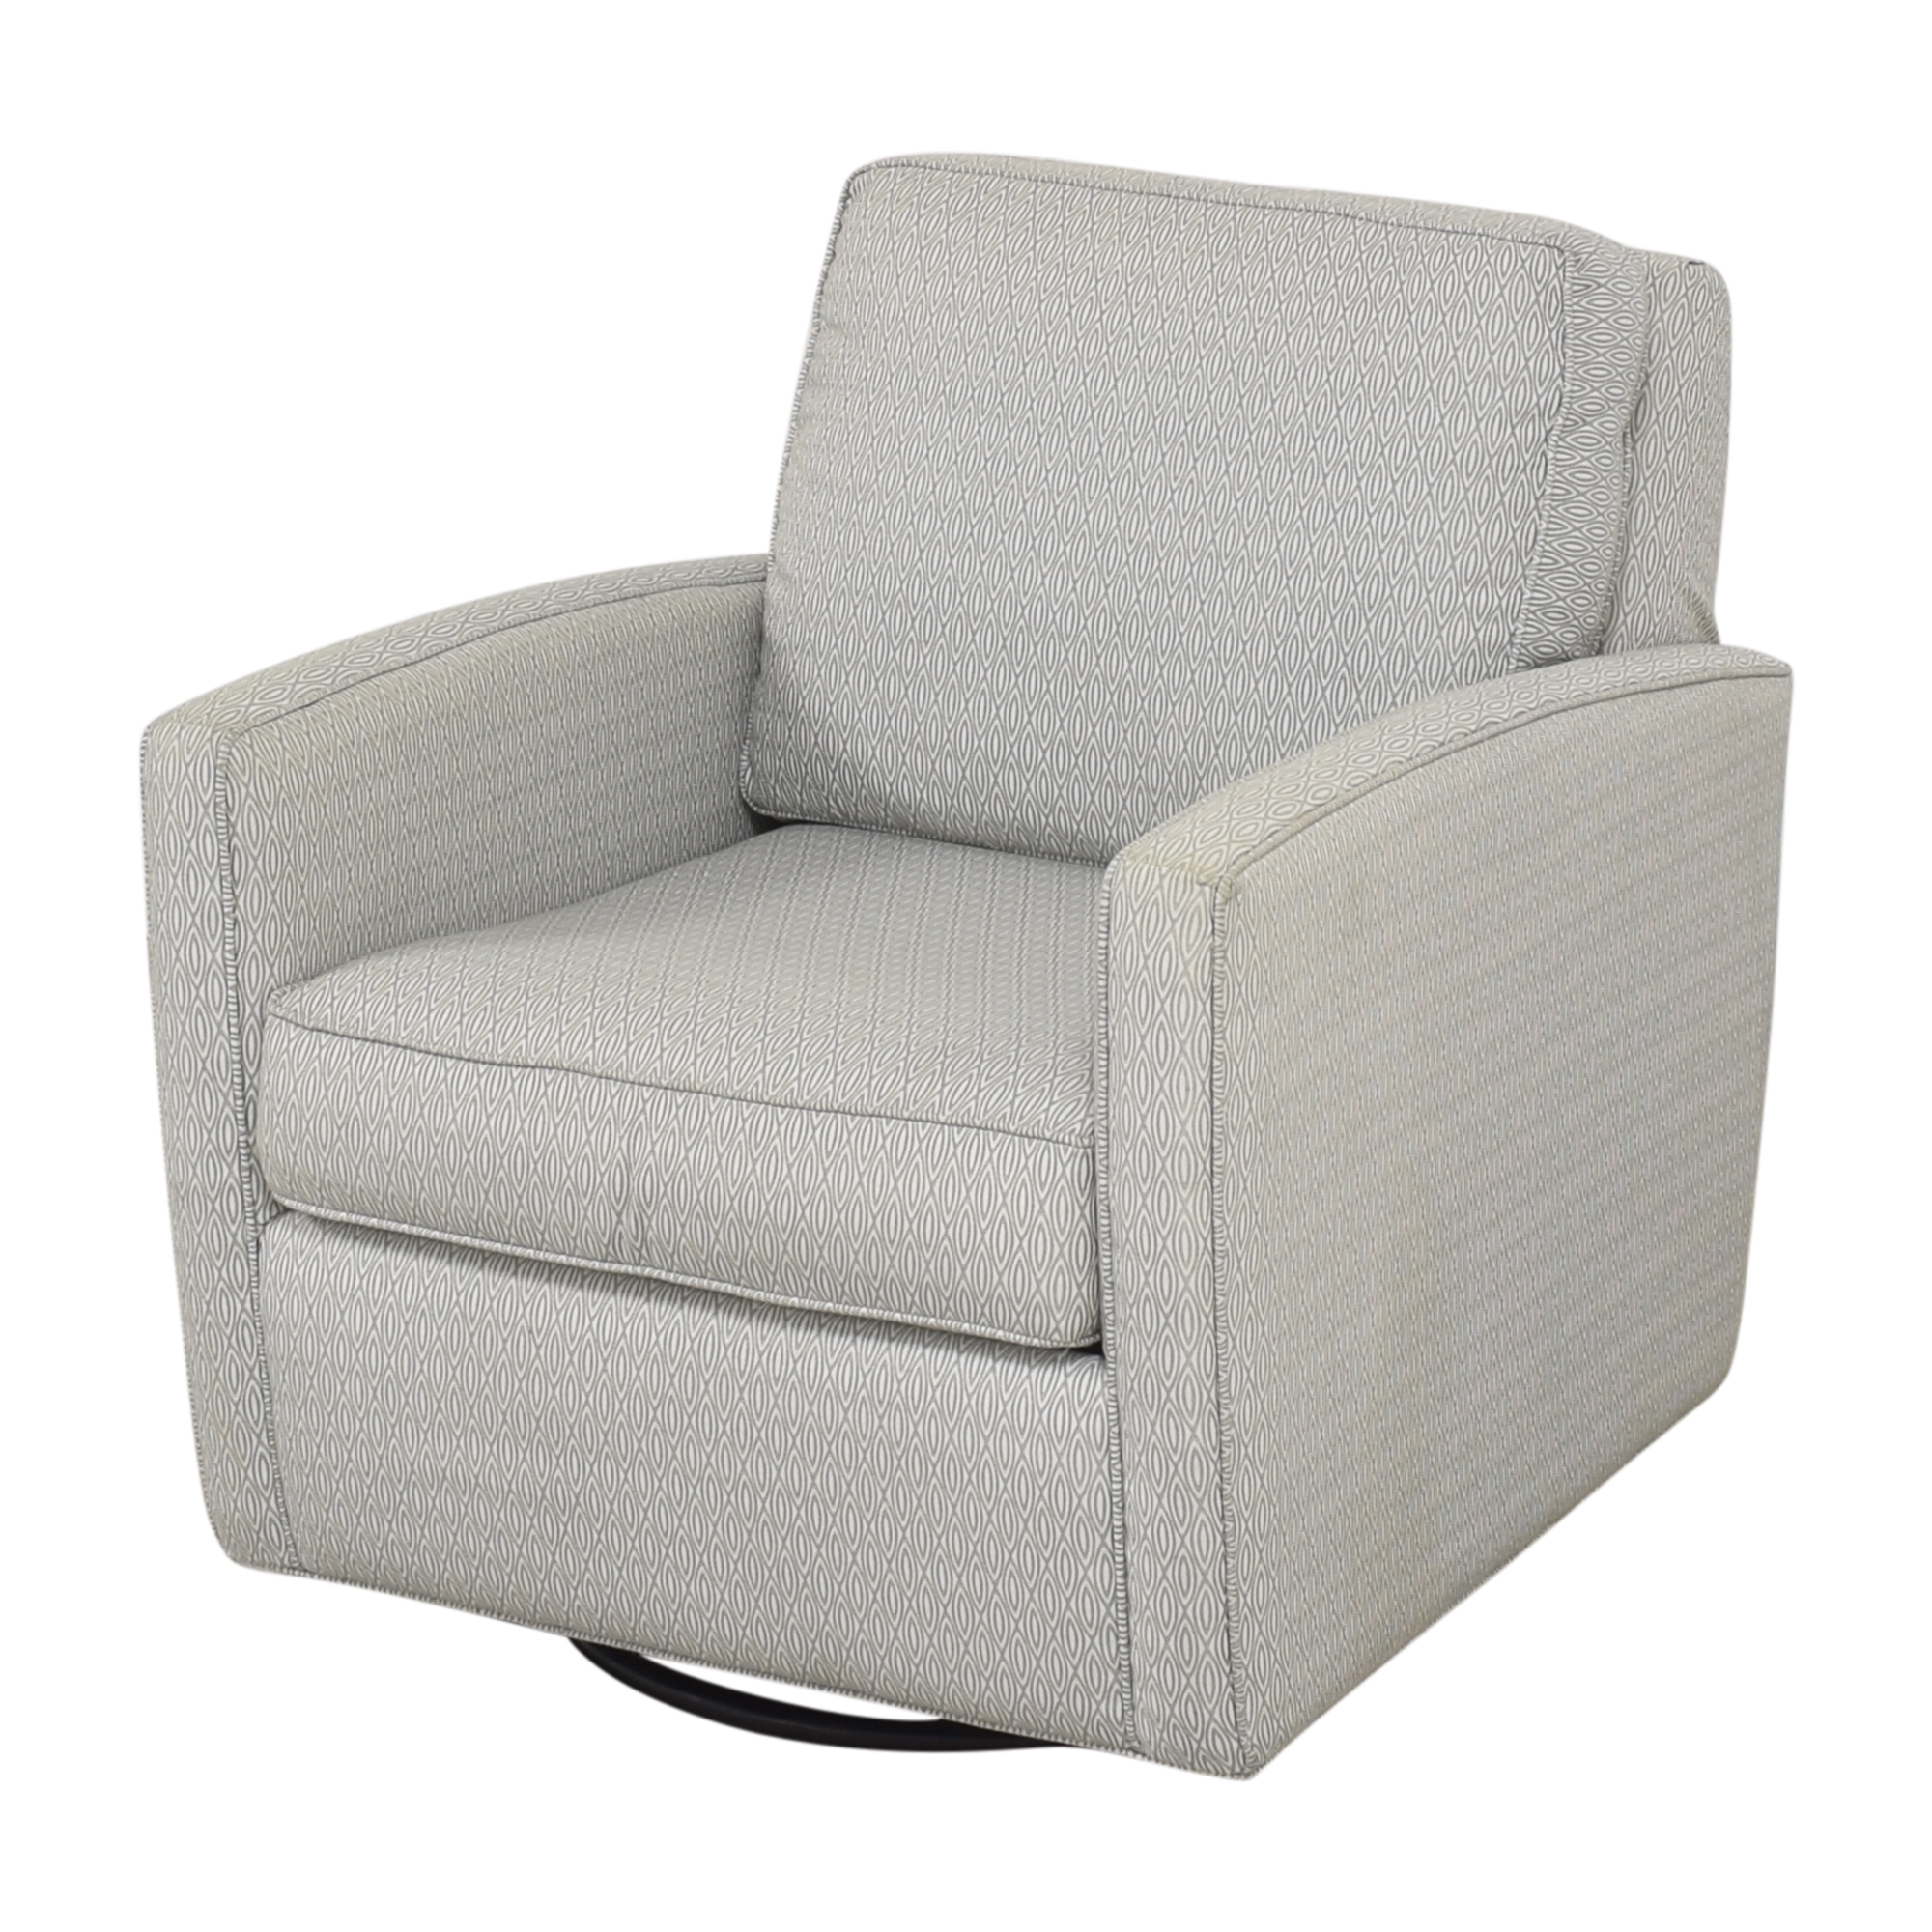 Younger Furniture Younger Furniture Lincoln Swivel Glider Chair used